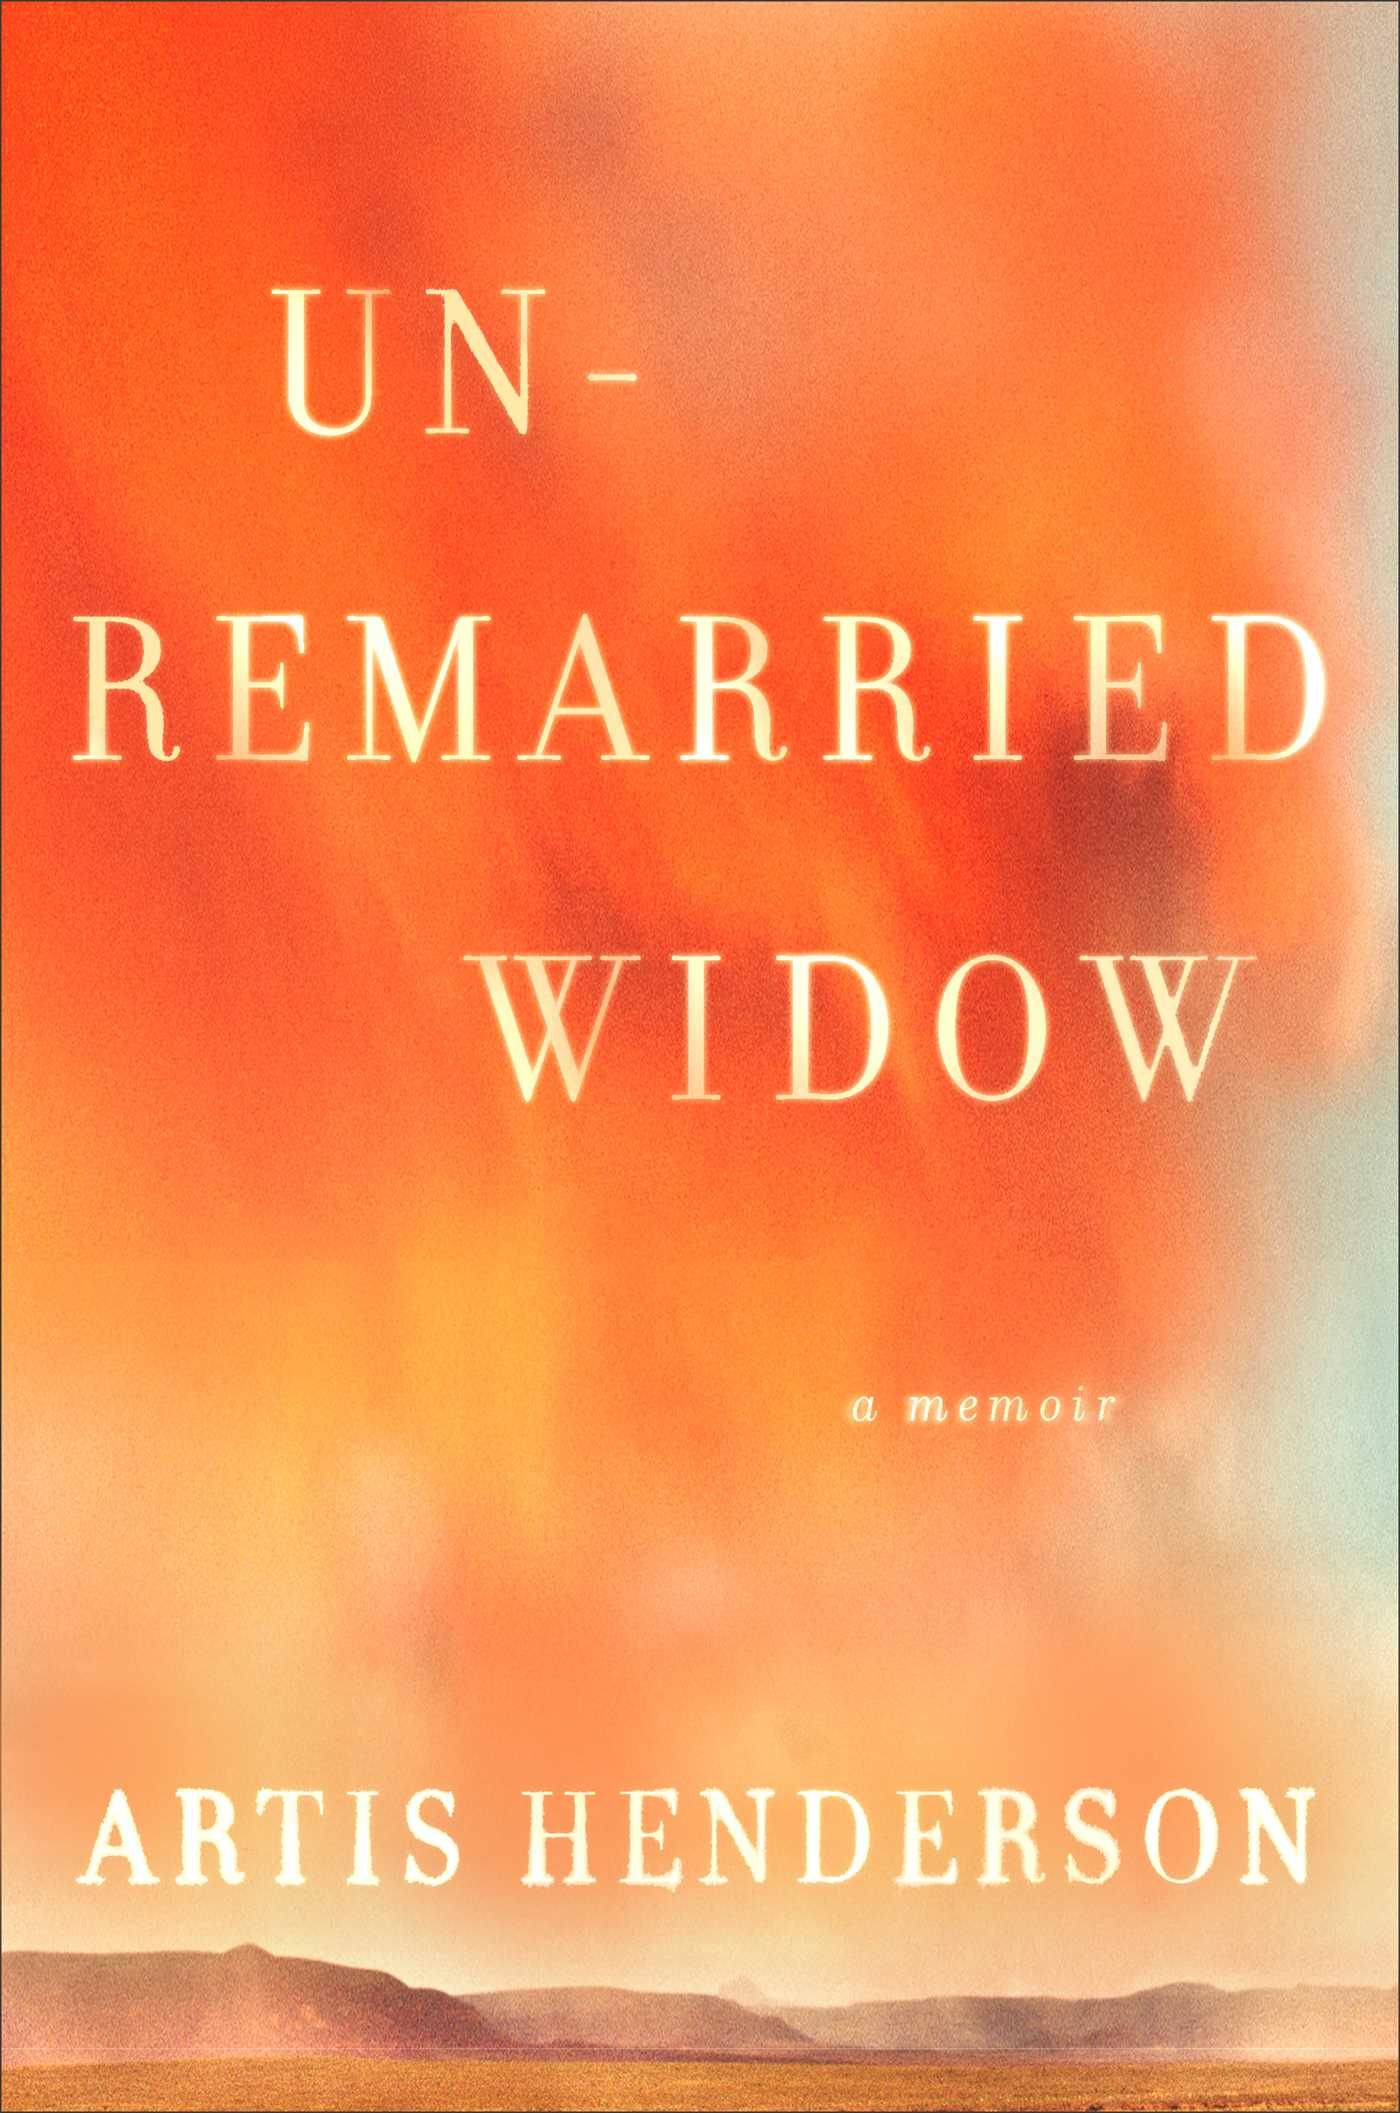 Unremarried-widow-9781451649307_hr